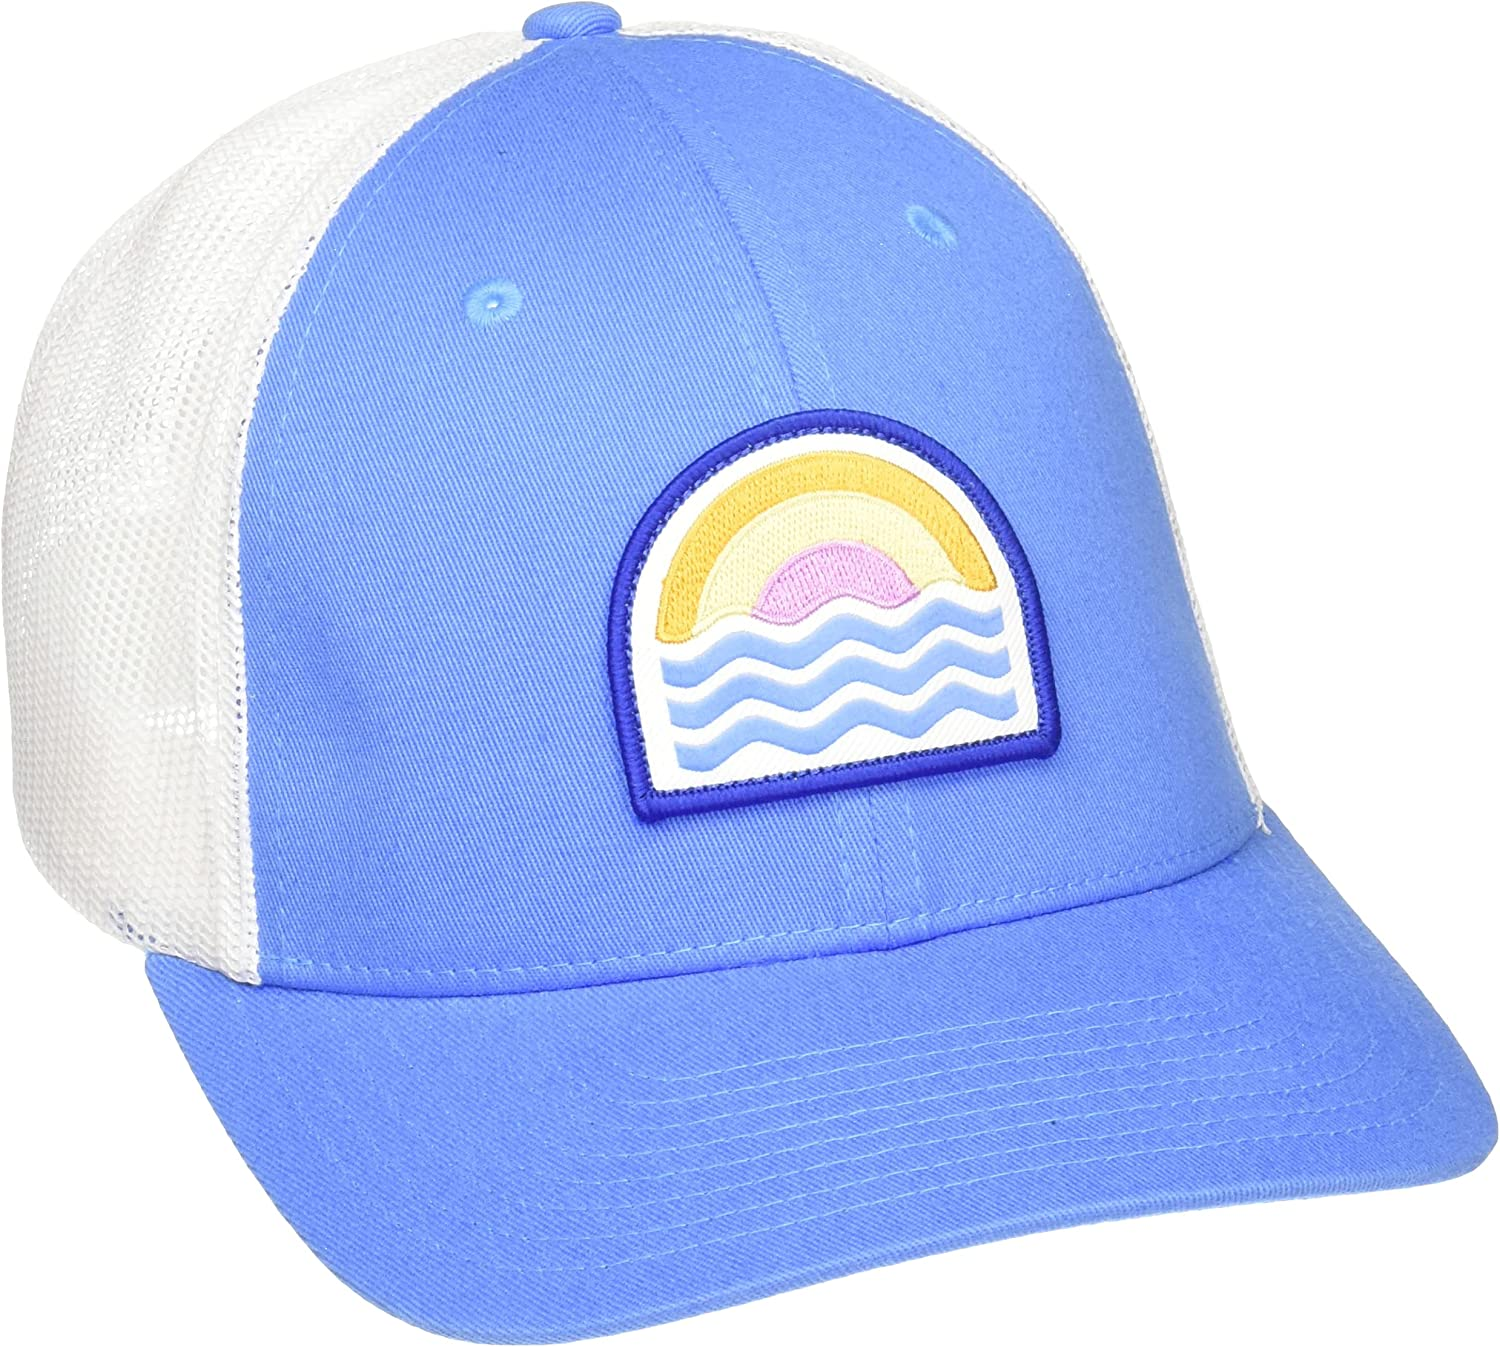 Columbia Women's Snap Back Hat, Harbor Blue/Sunwaves Patch, One Size: Clothing